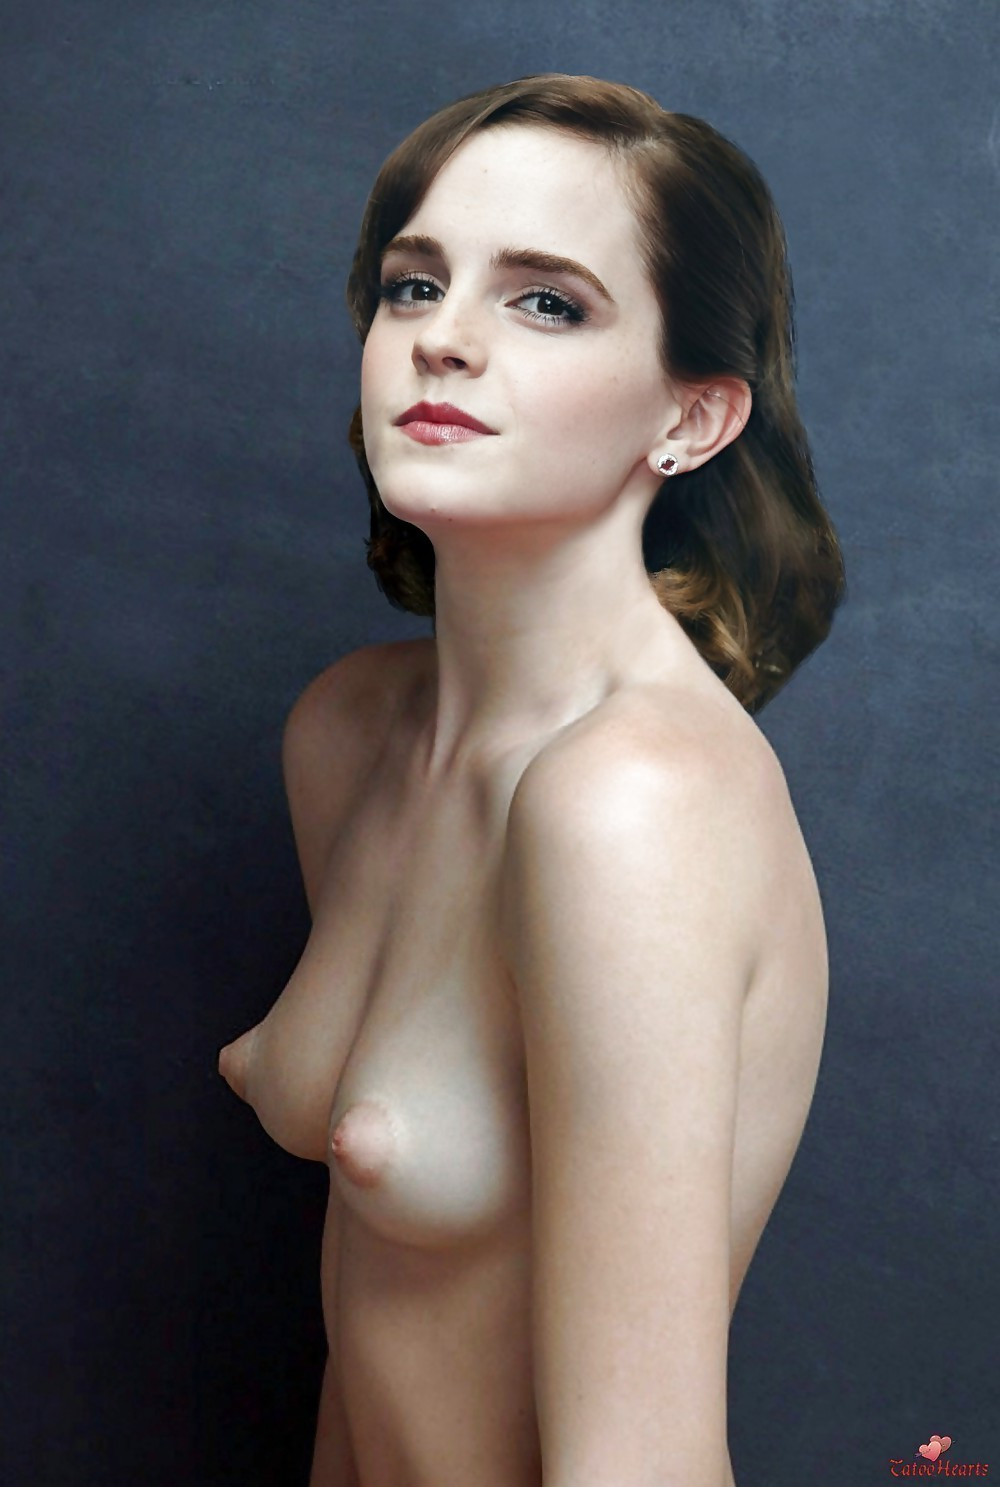 emma-watson-naked-pictures-wwe-diva-layla-nude-hardcore-sex